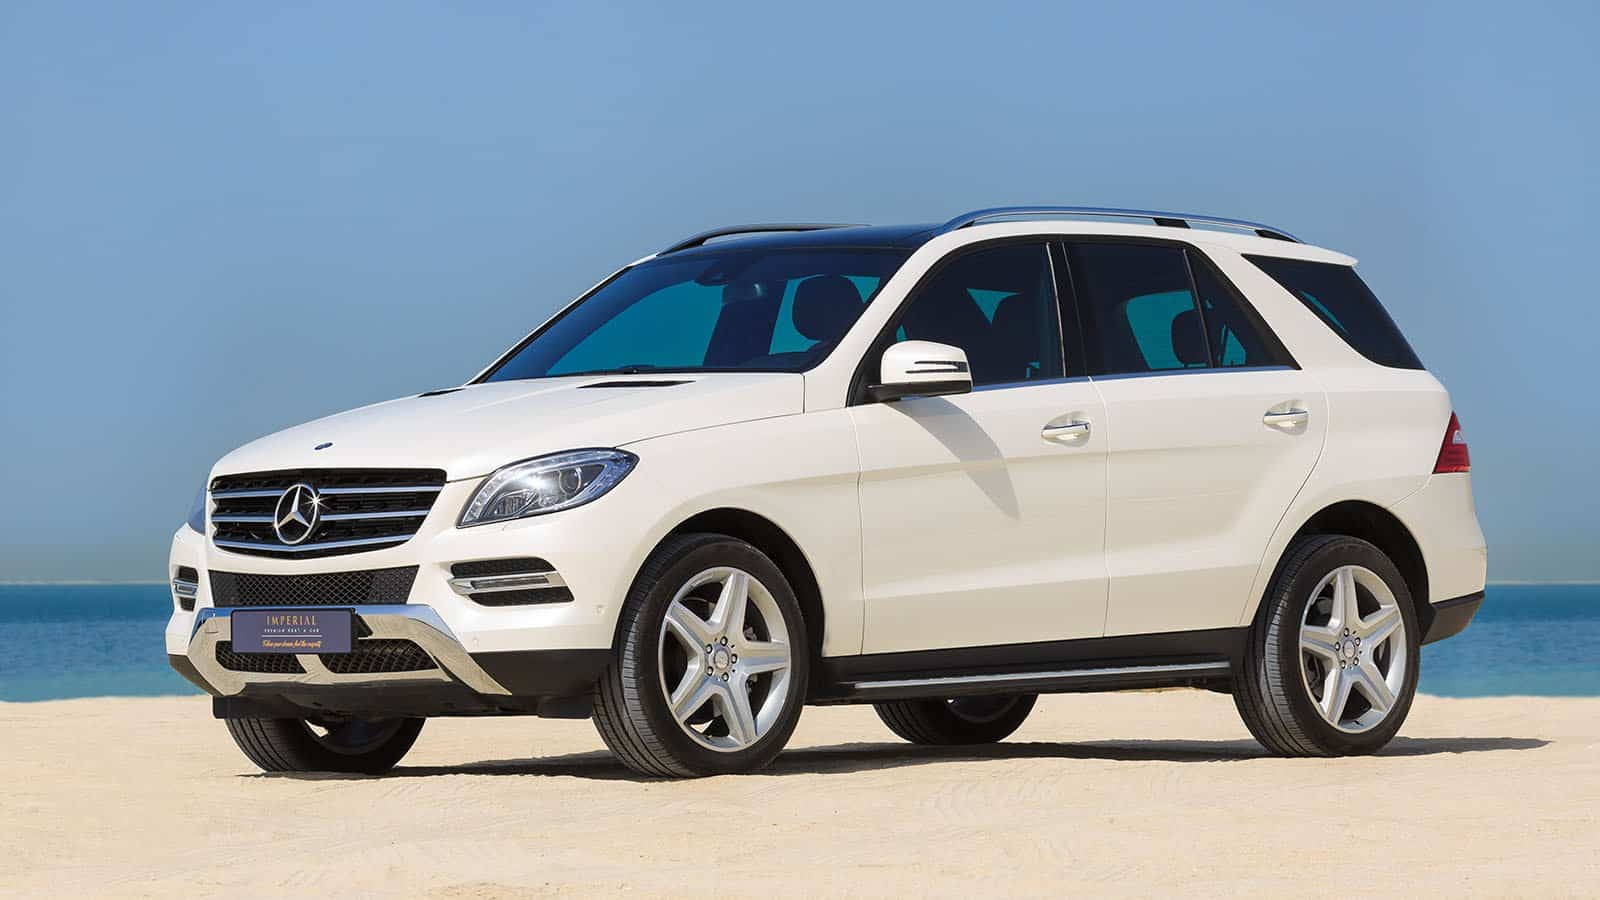 Mercedes benz ml350 rent dubai imperial premium rent a car for Mercedes benz ml 2015